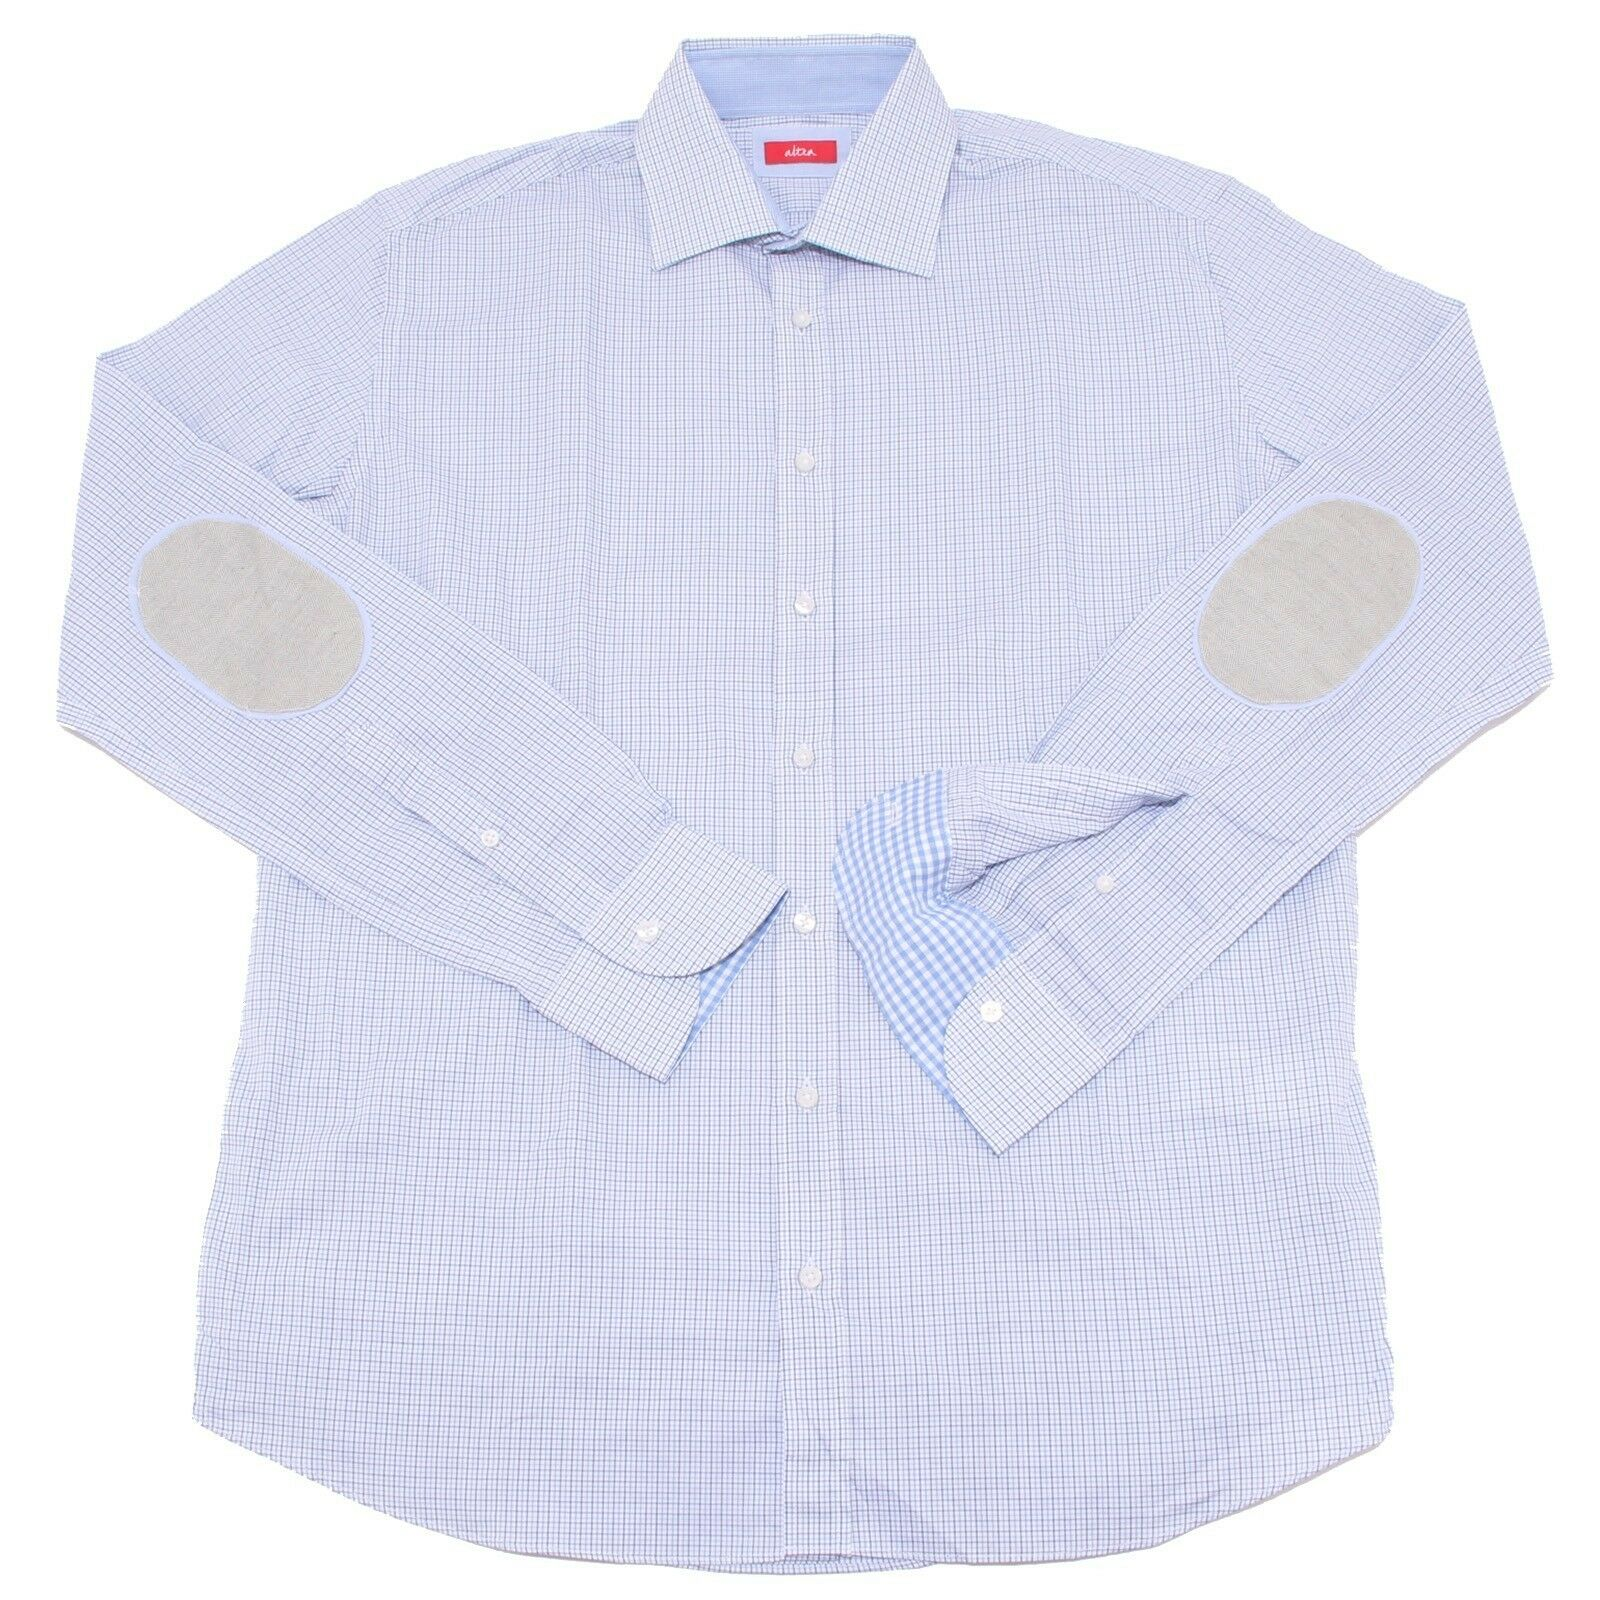 2707P camicia quadretto manica lunga ALTEA uomo shirts men